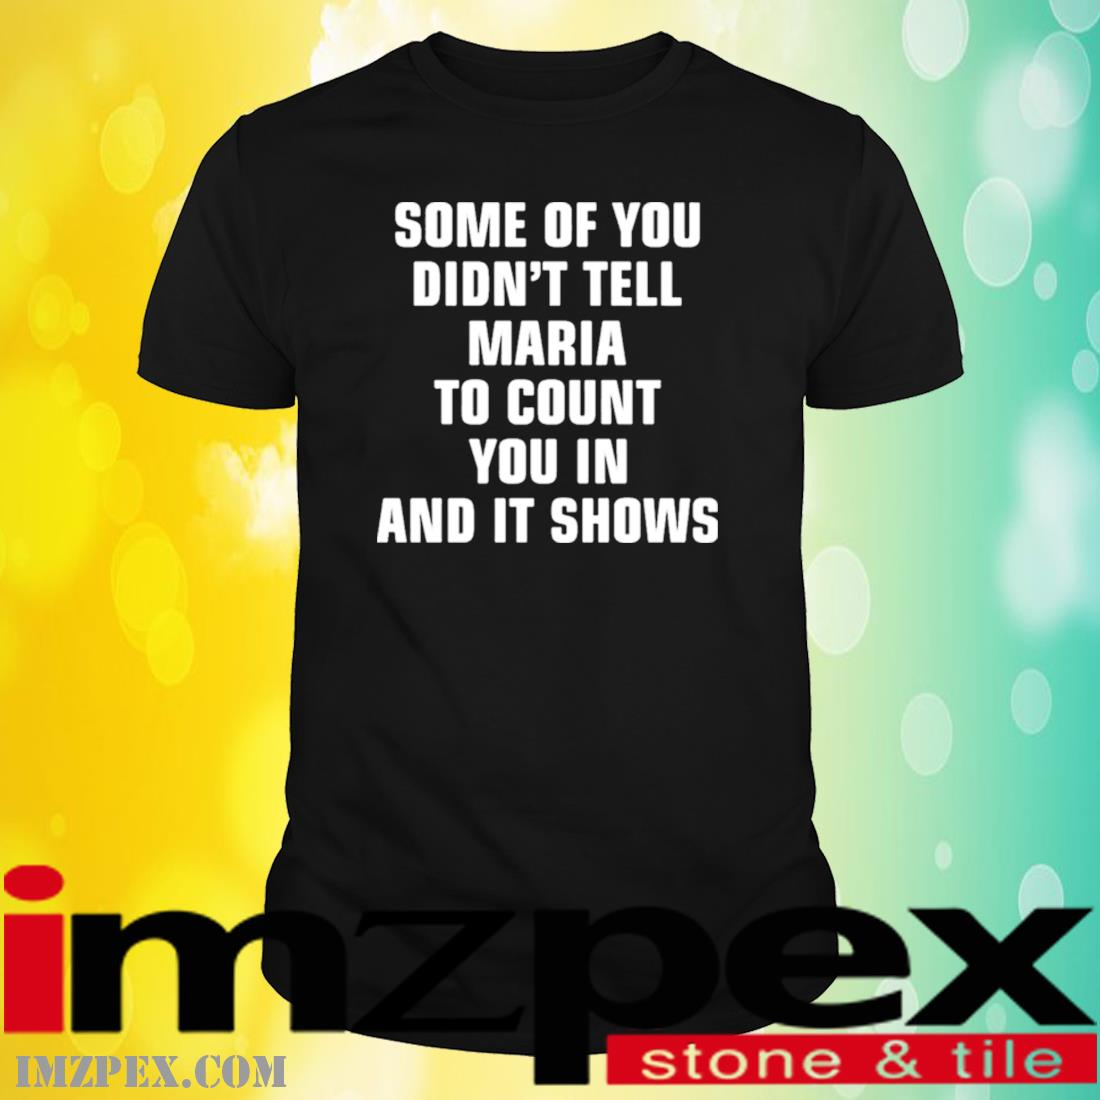 Some Of You Didn't Tell Maria To Count You In And It Shows Shirt